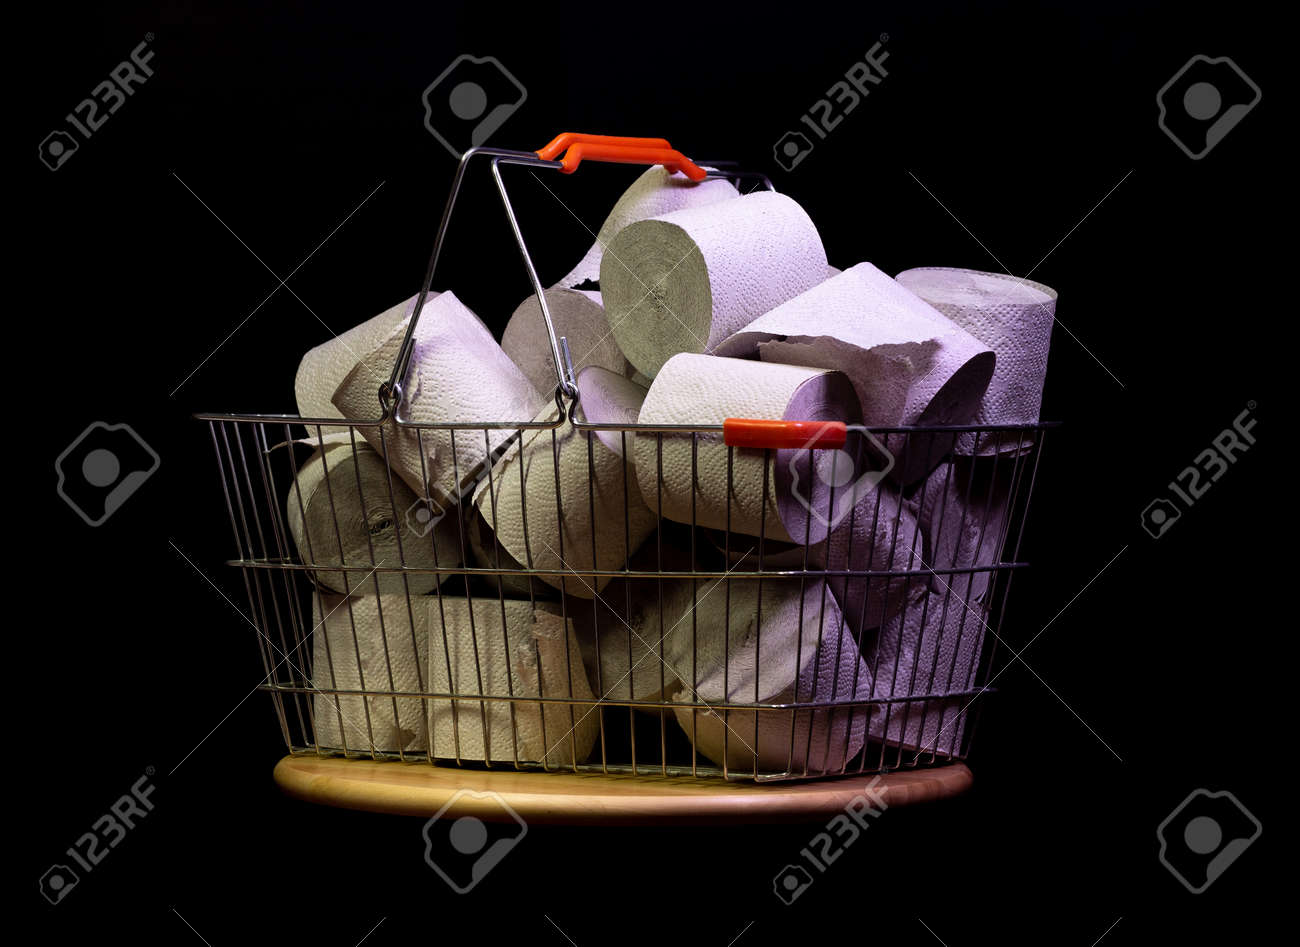 Shopping basket with rolls of toilet paper isolated on black - 144390486